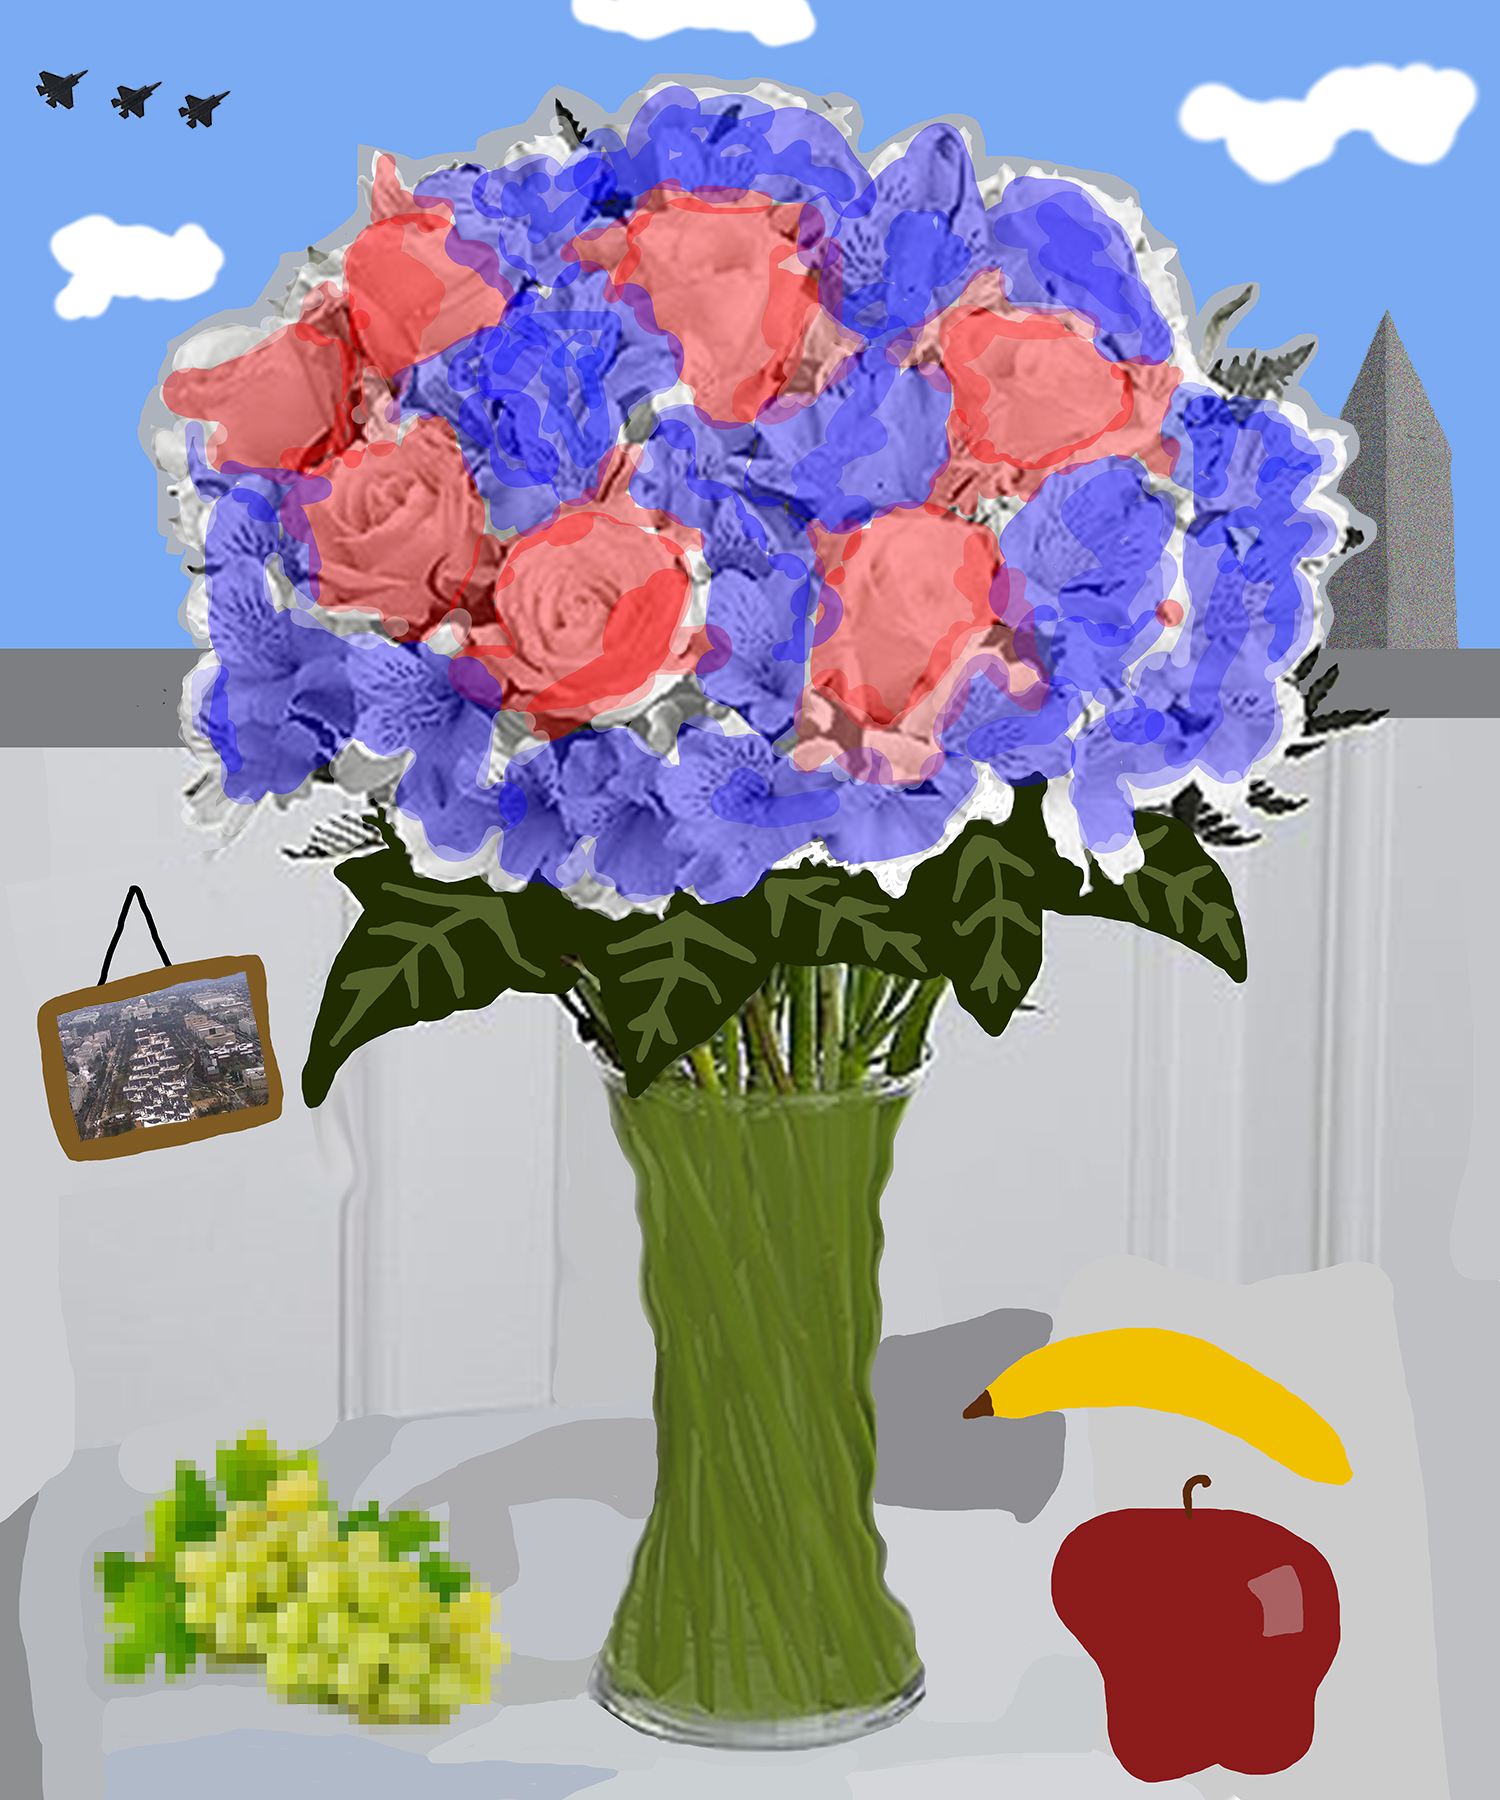 Flowers for donald #21 (a nice day [with some fruit])